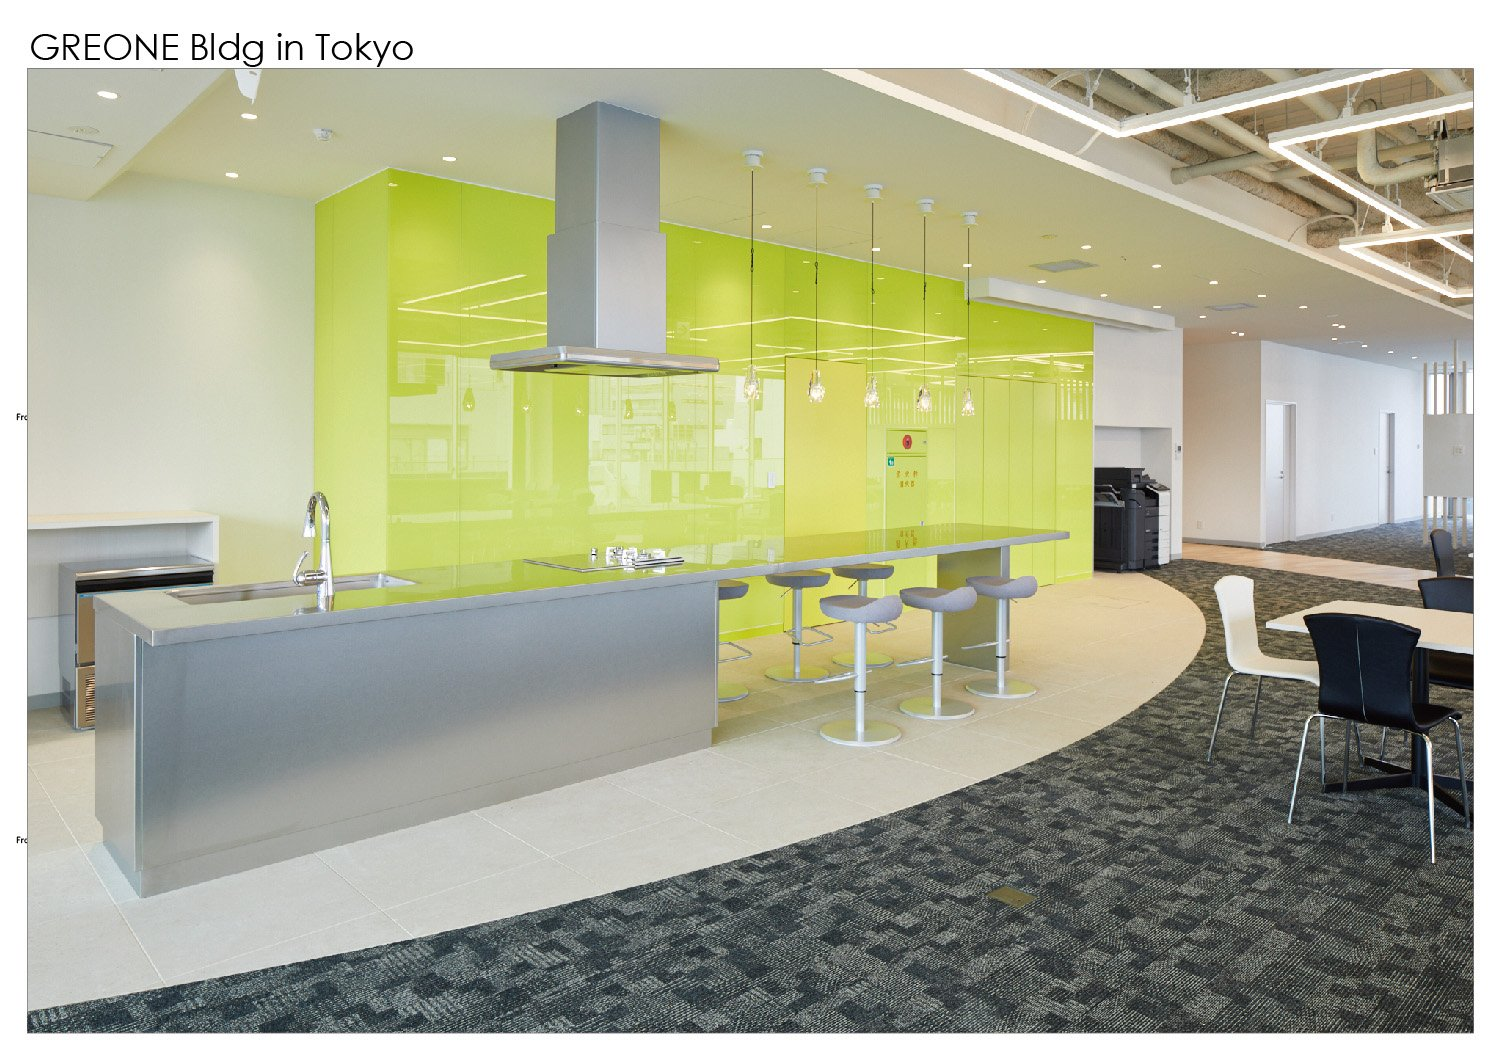 7th floor kitchen space Nacása & Partners Inc.}